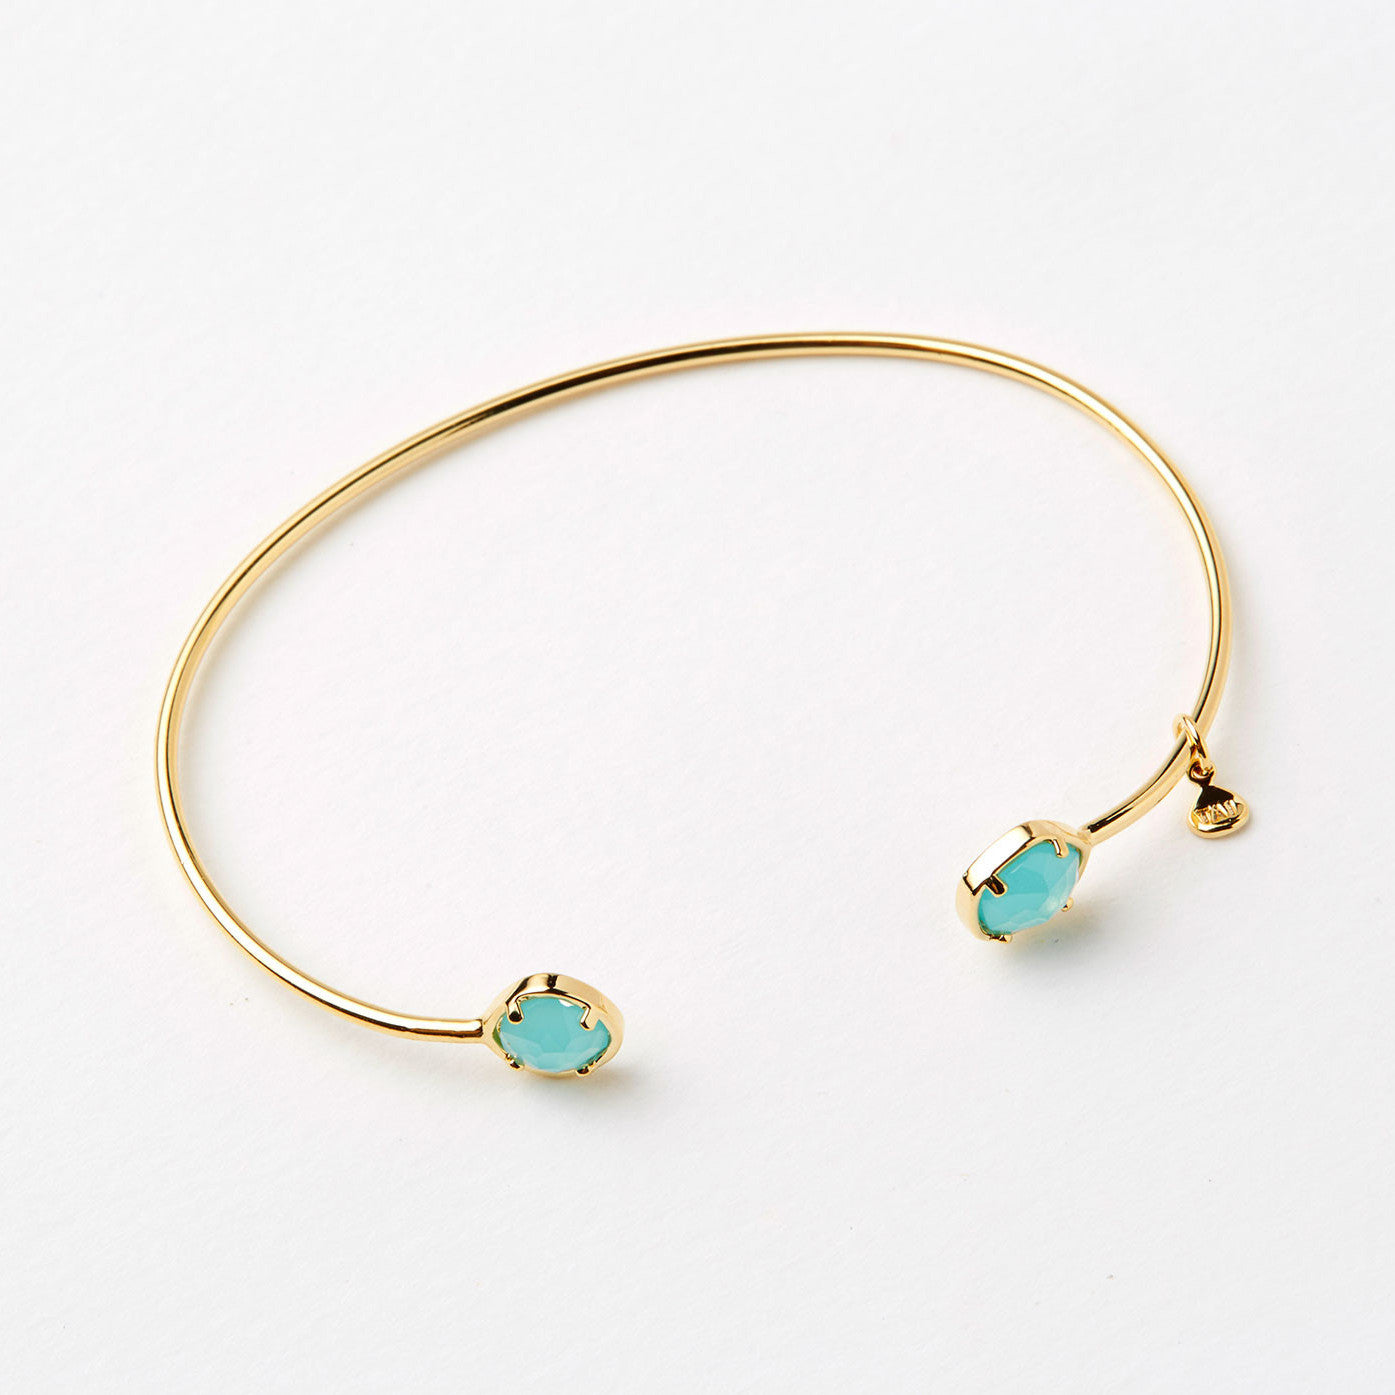 this made on dainty set pin bracelet turquoise stone fill bezel delicate a colored is gold